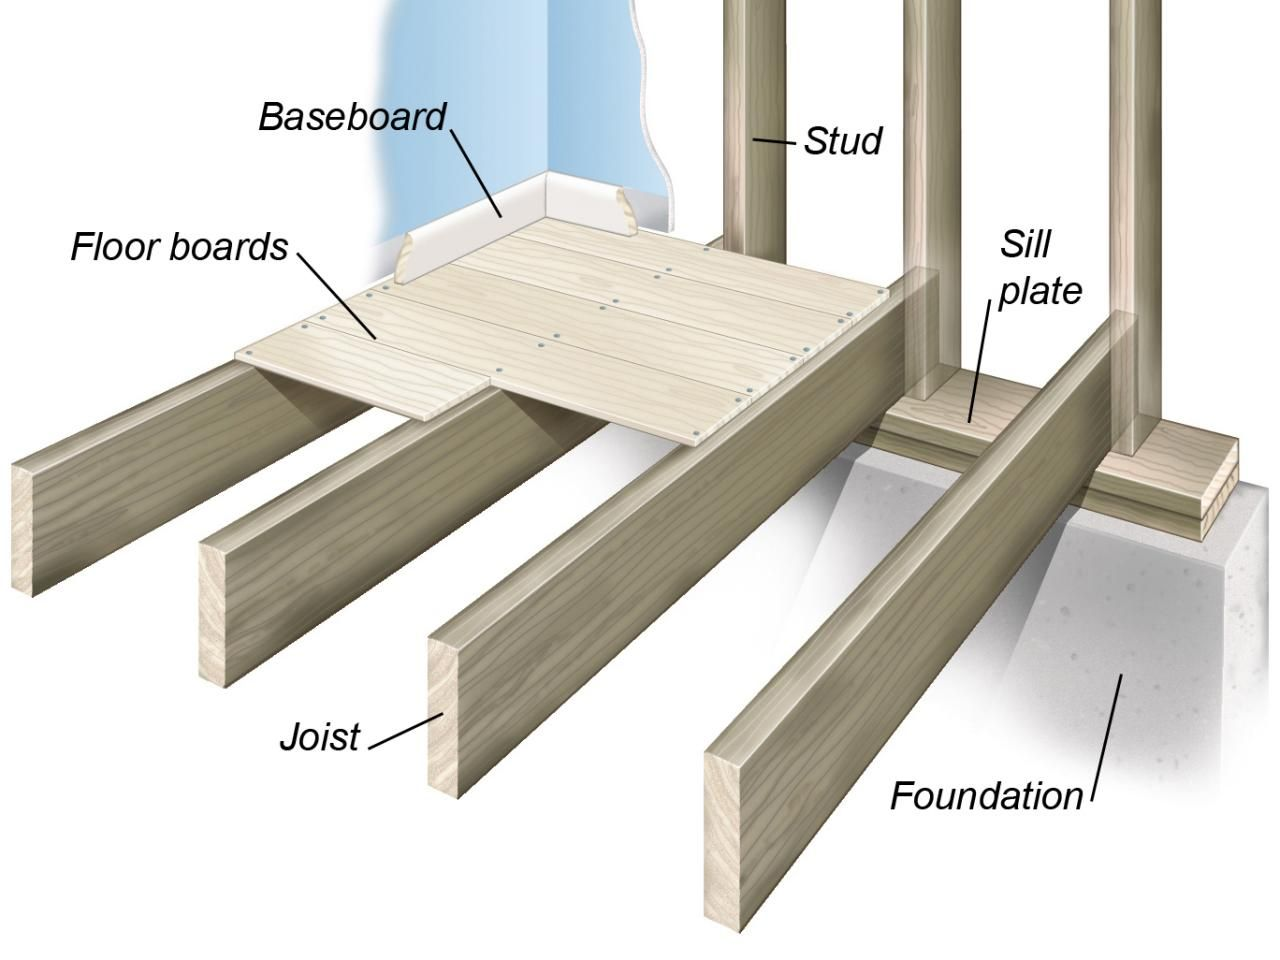 Your Guide to the Different Types of Wood Flooring | Floor framing ...